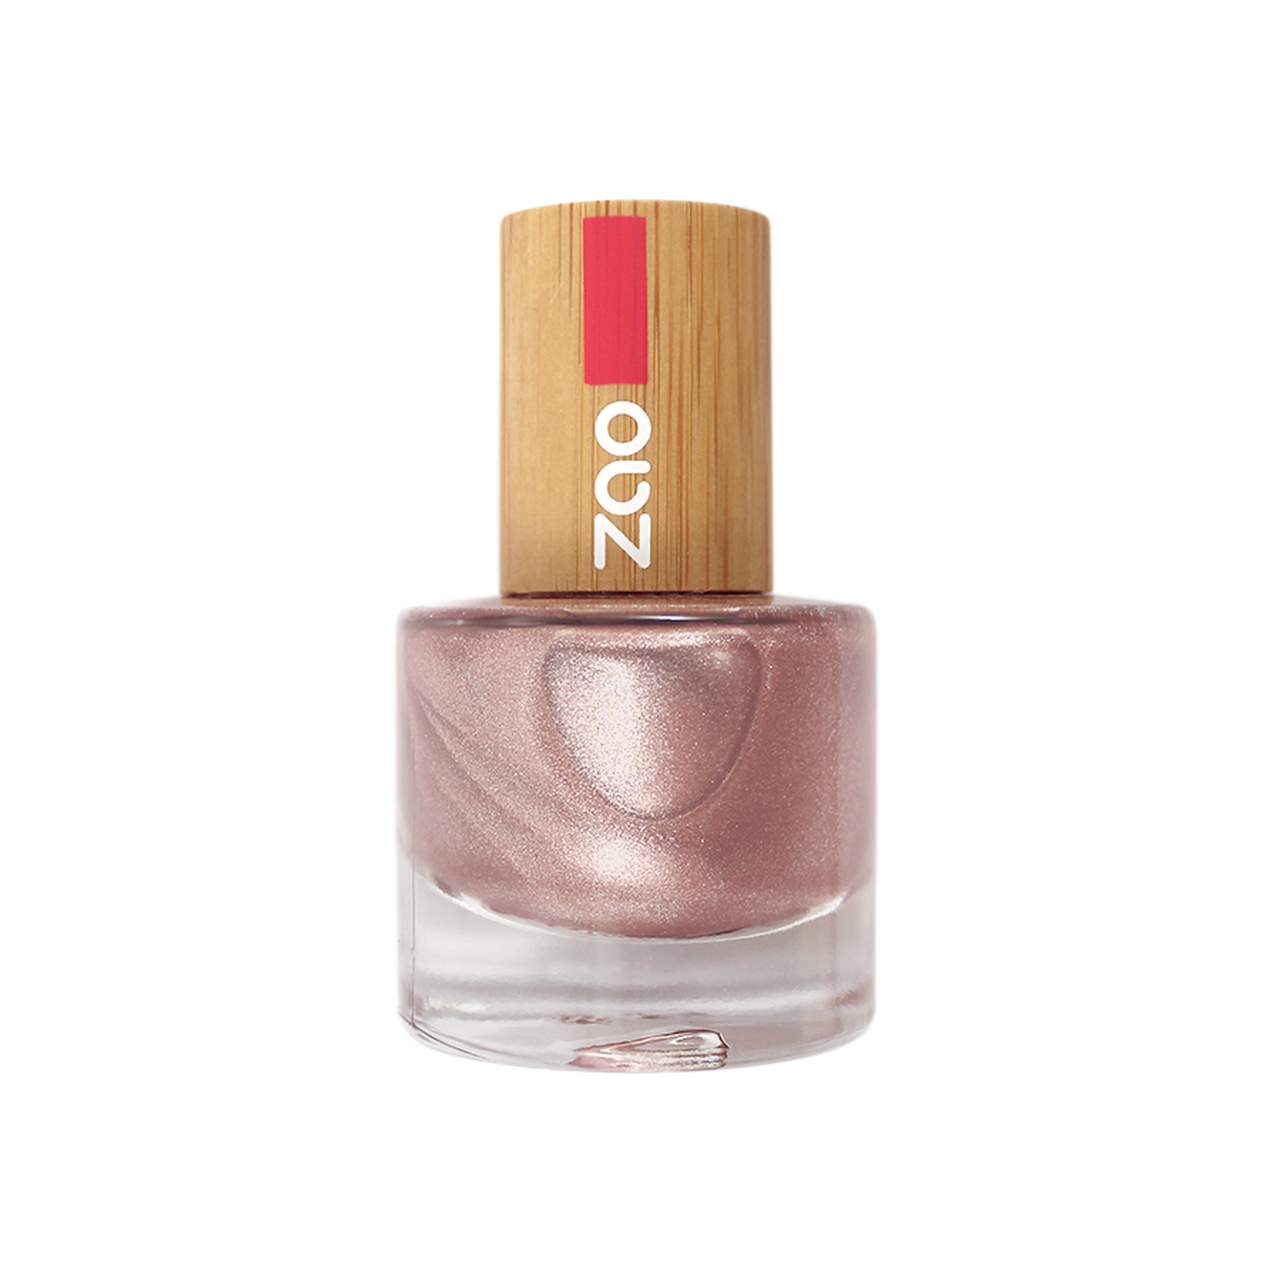 Pink Champagne Nail Polish, Palm oil free, without any toxic ingredients - natoorio